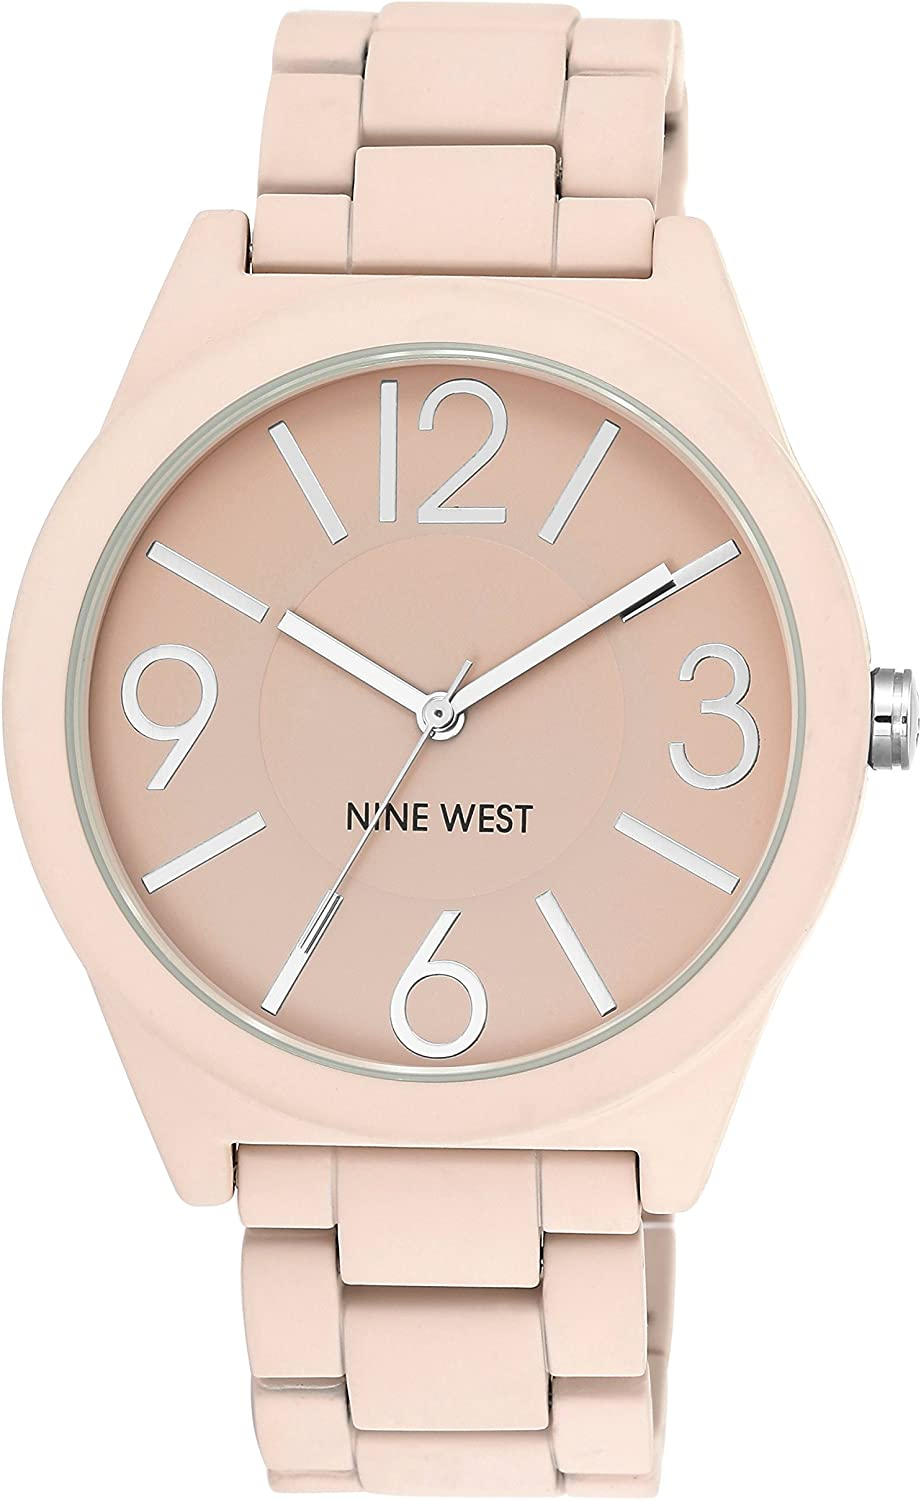 Nine West Women's NW/1679PKPK Matte Pink Rubberized Bracelet Watch